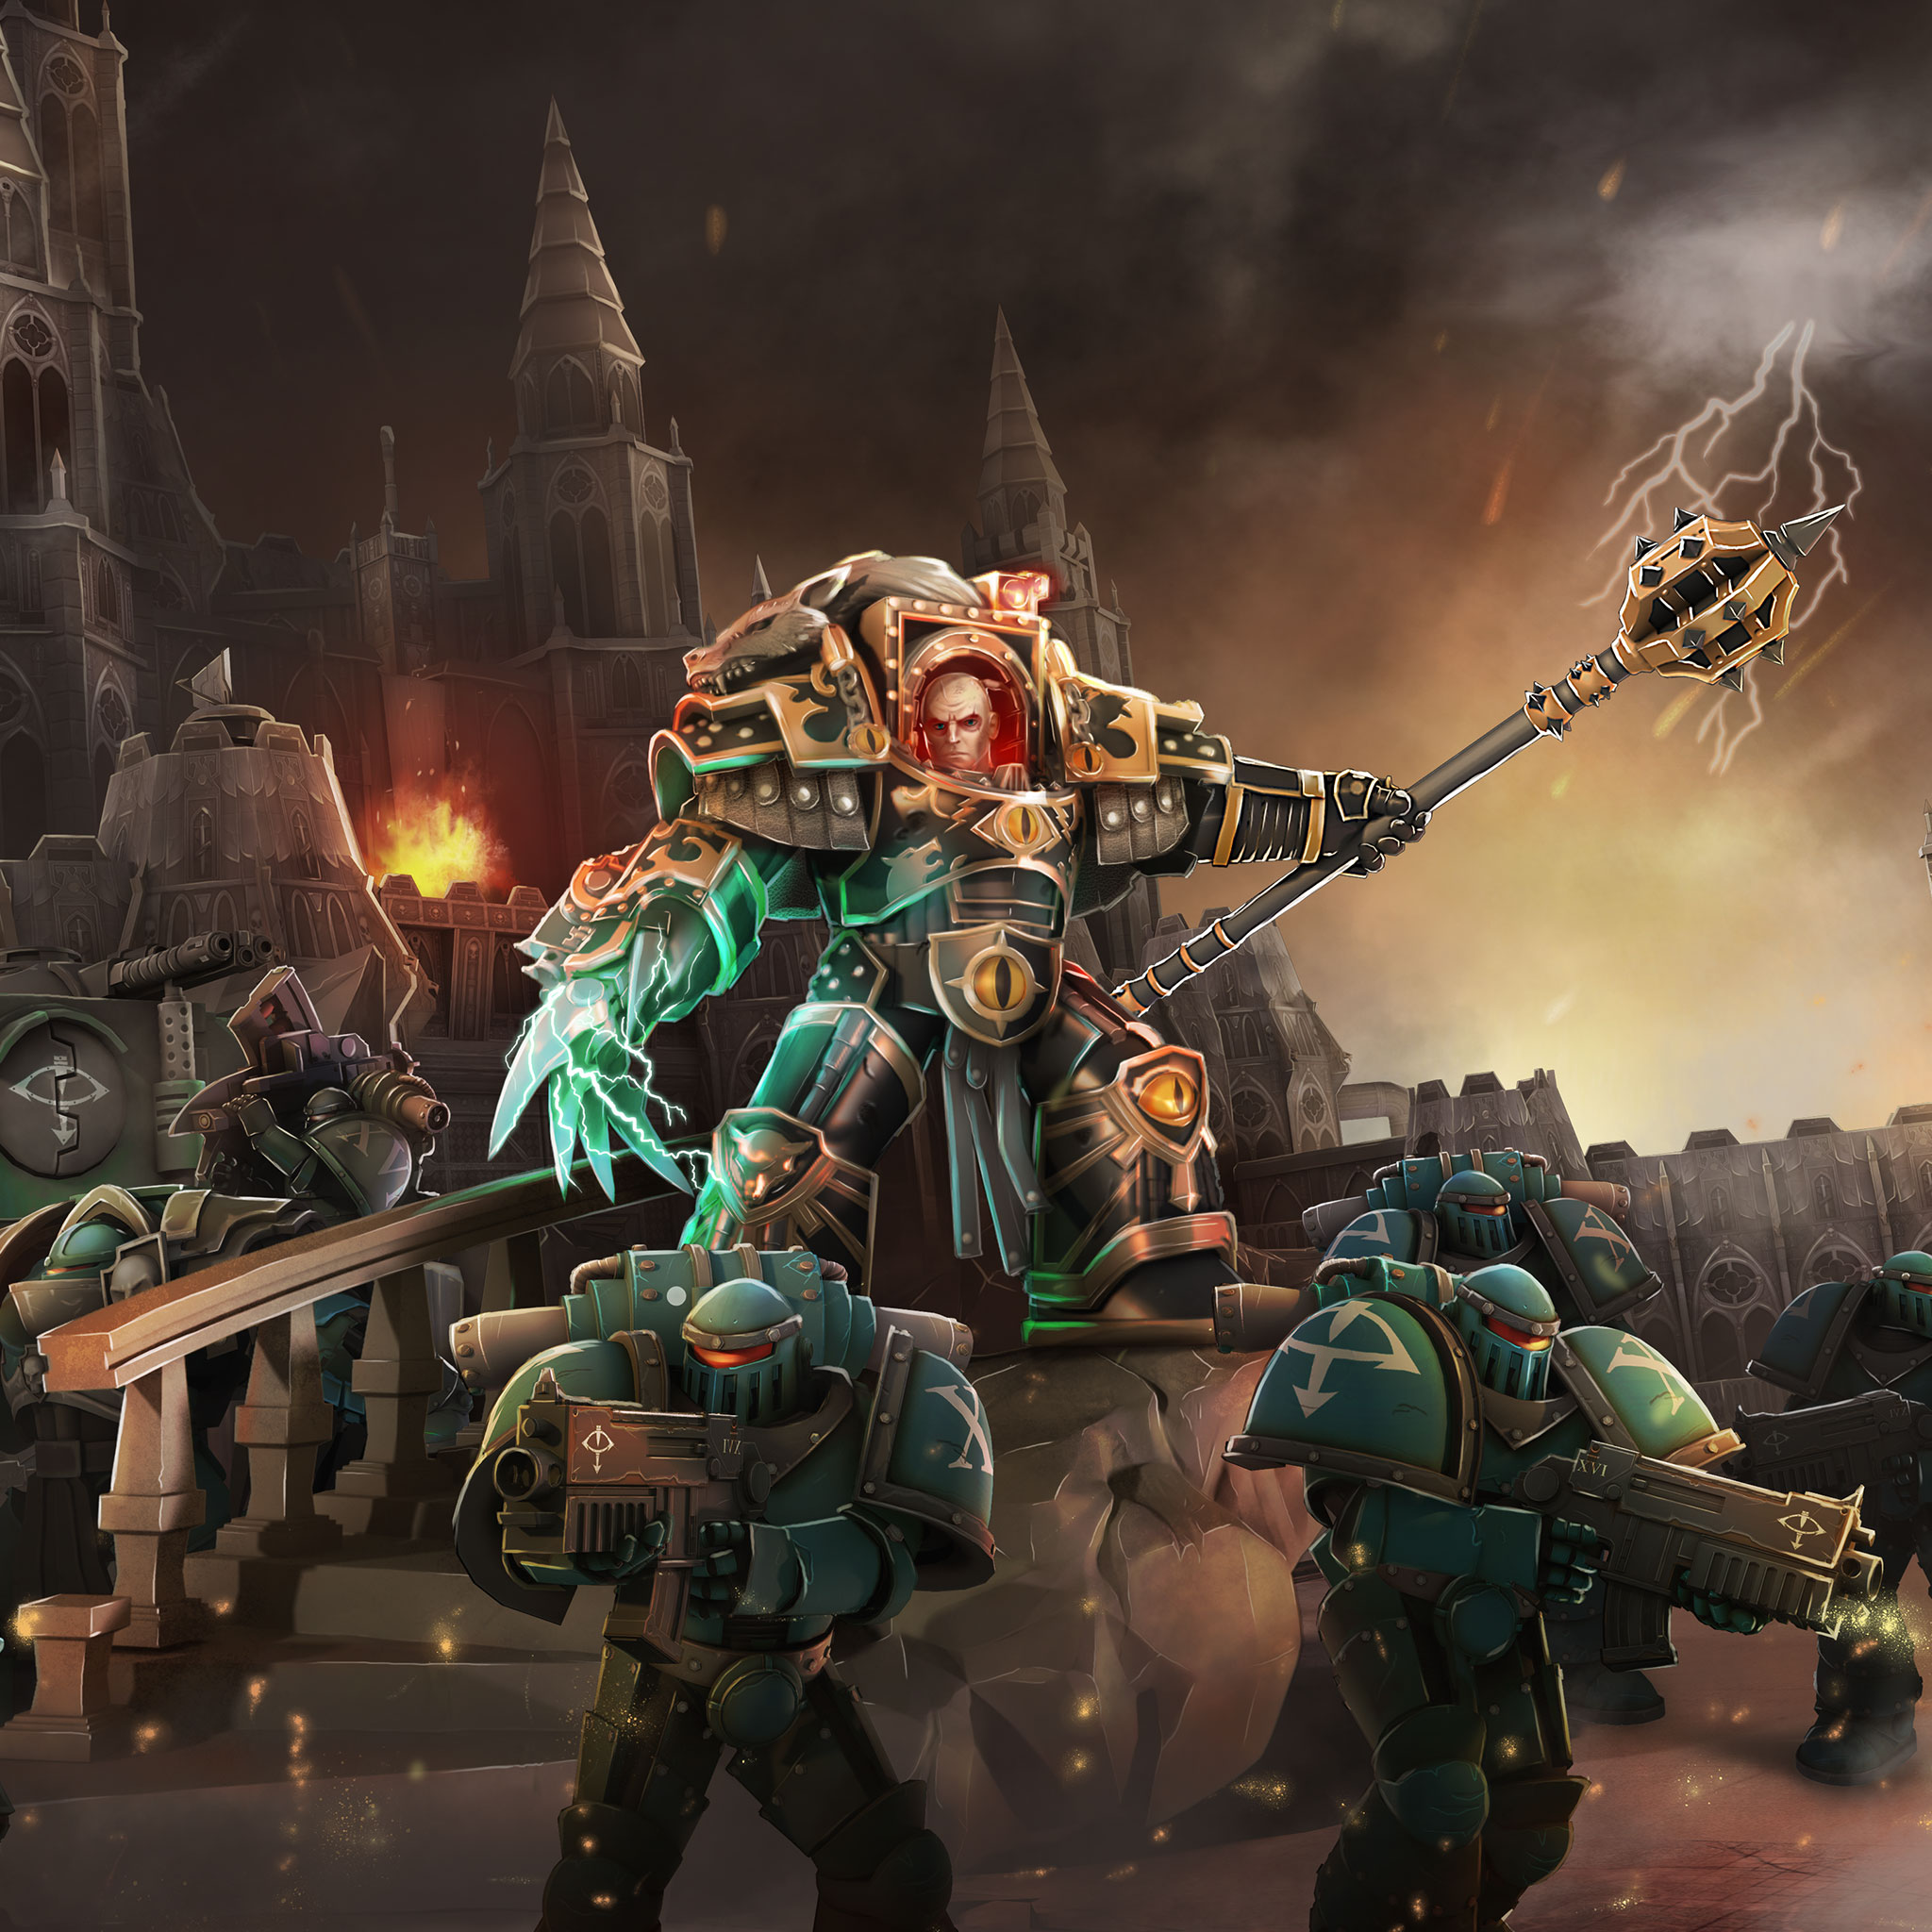 Eagle Wallpaper Iphone X The Wrath Of Horus The Horus Heresy Drop Assault